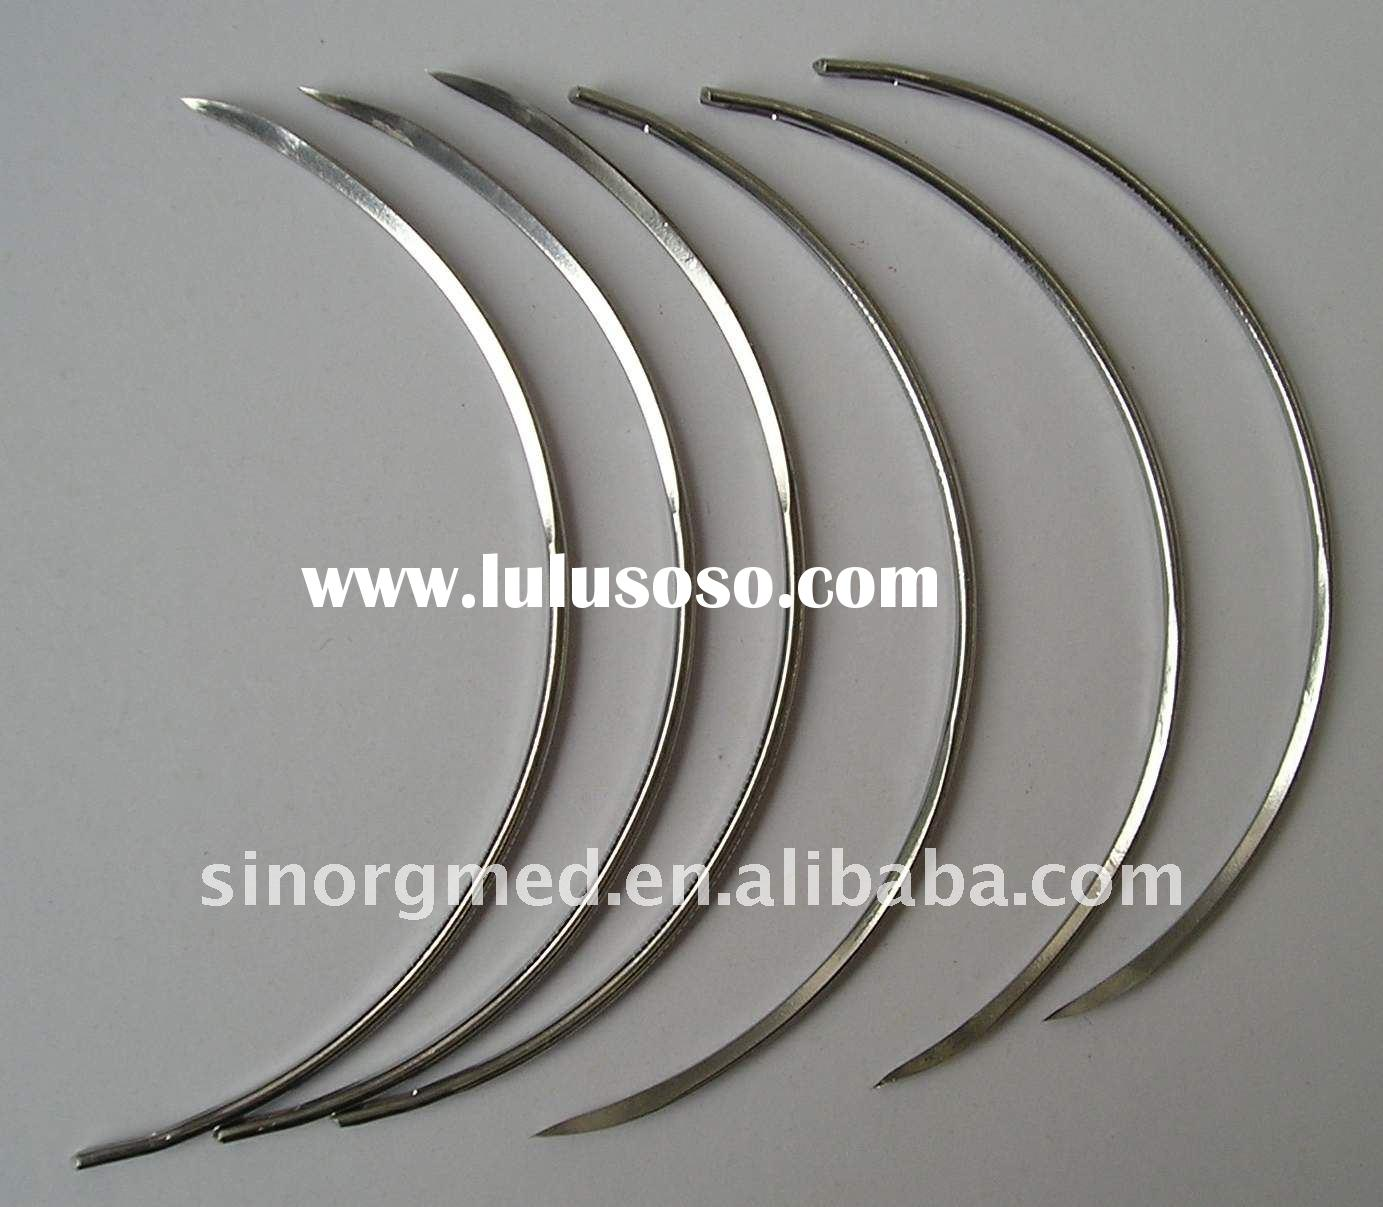 Name Different Types Suture